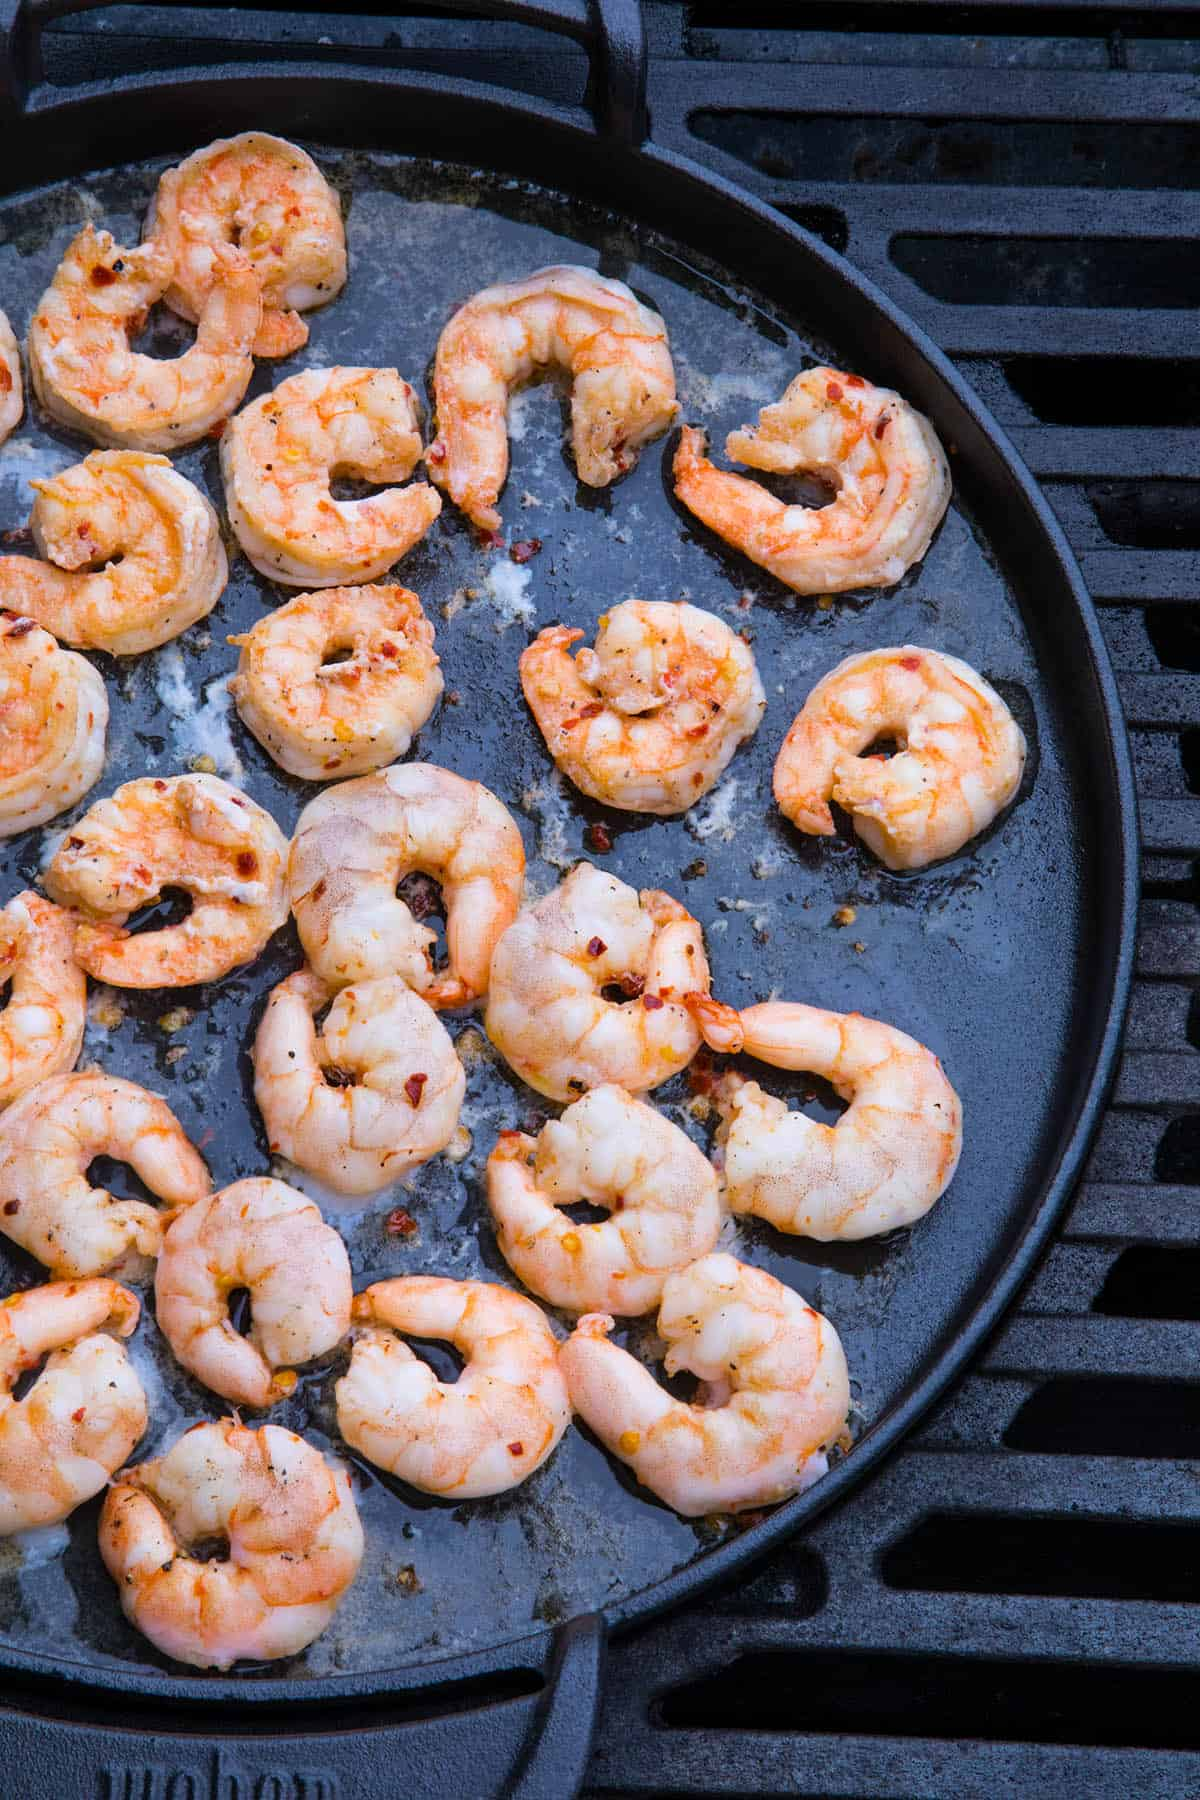 Grilling the shrimp